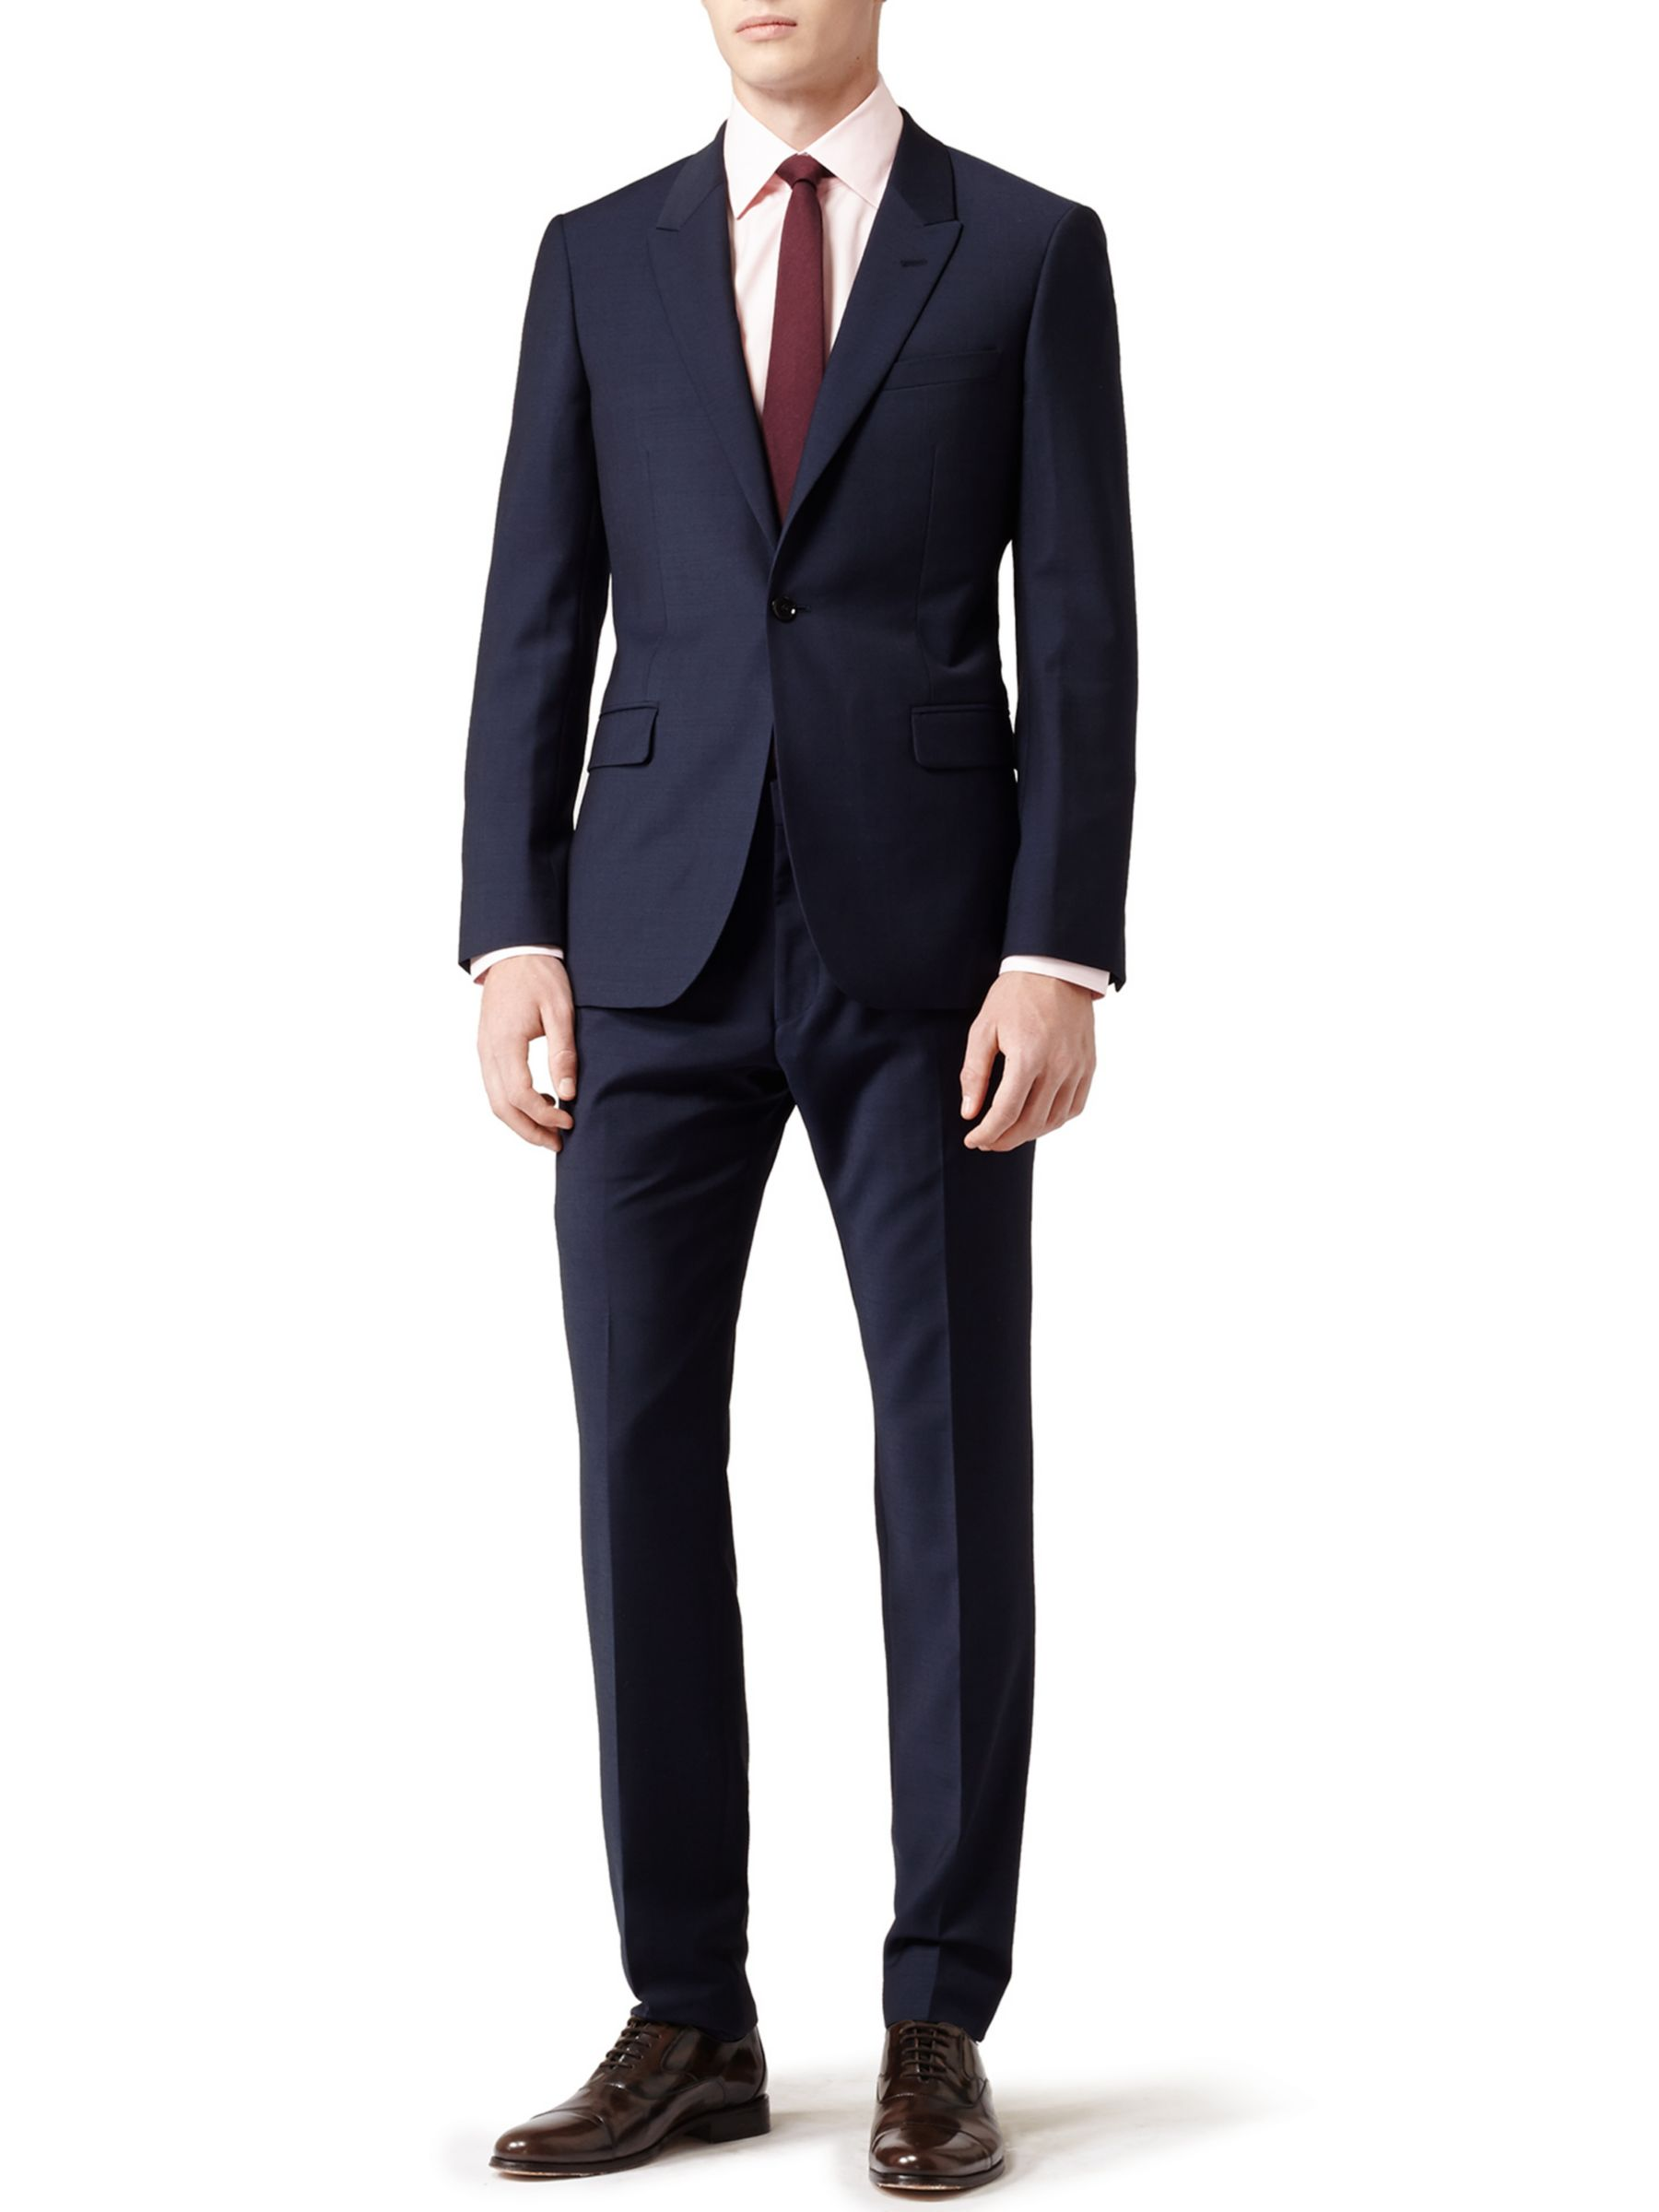 Men's Formalwear Buying Guide